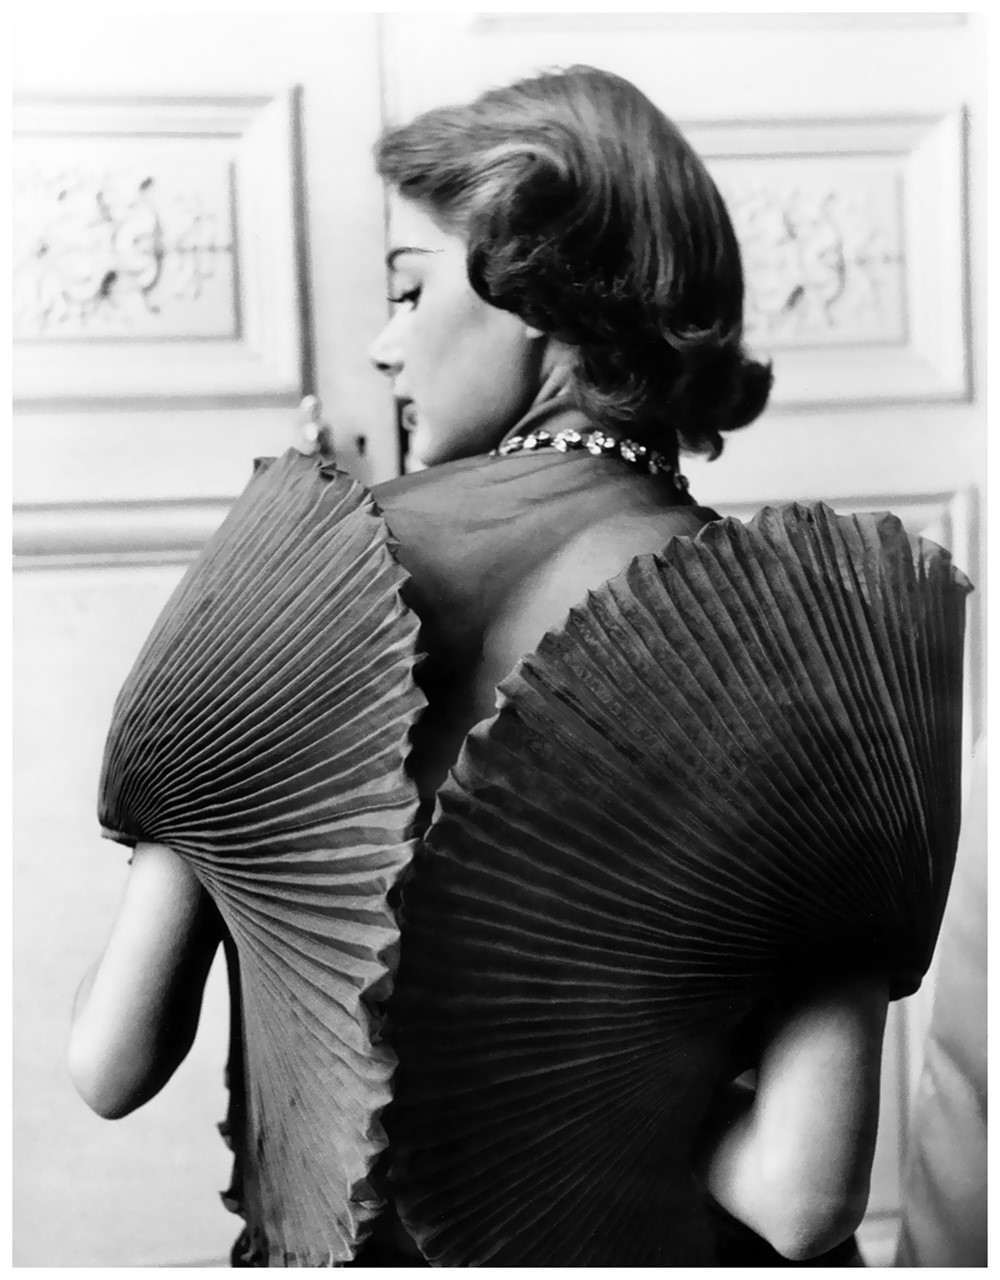 Jacqueline Marsel in a dress by Elsa Schiaparelli, 1951